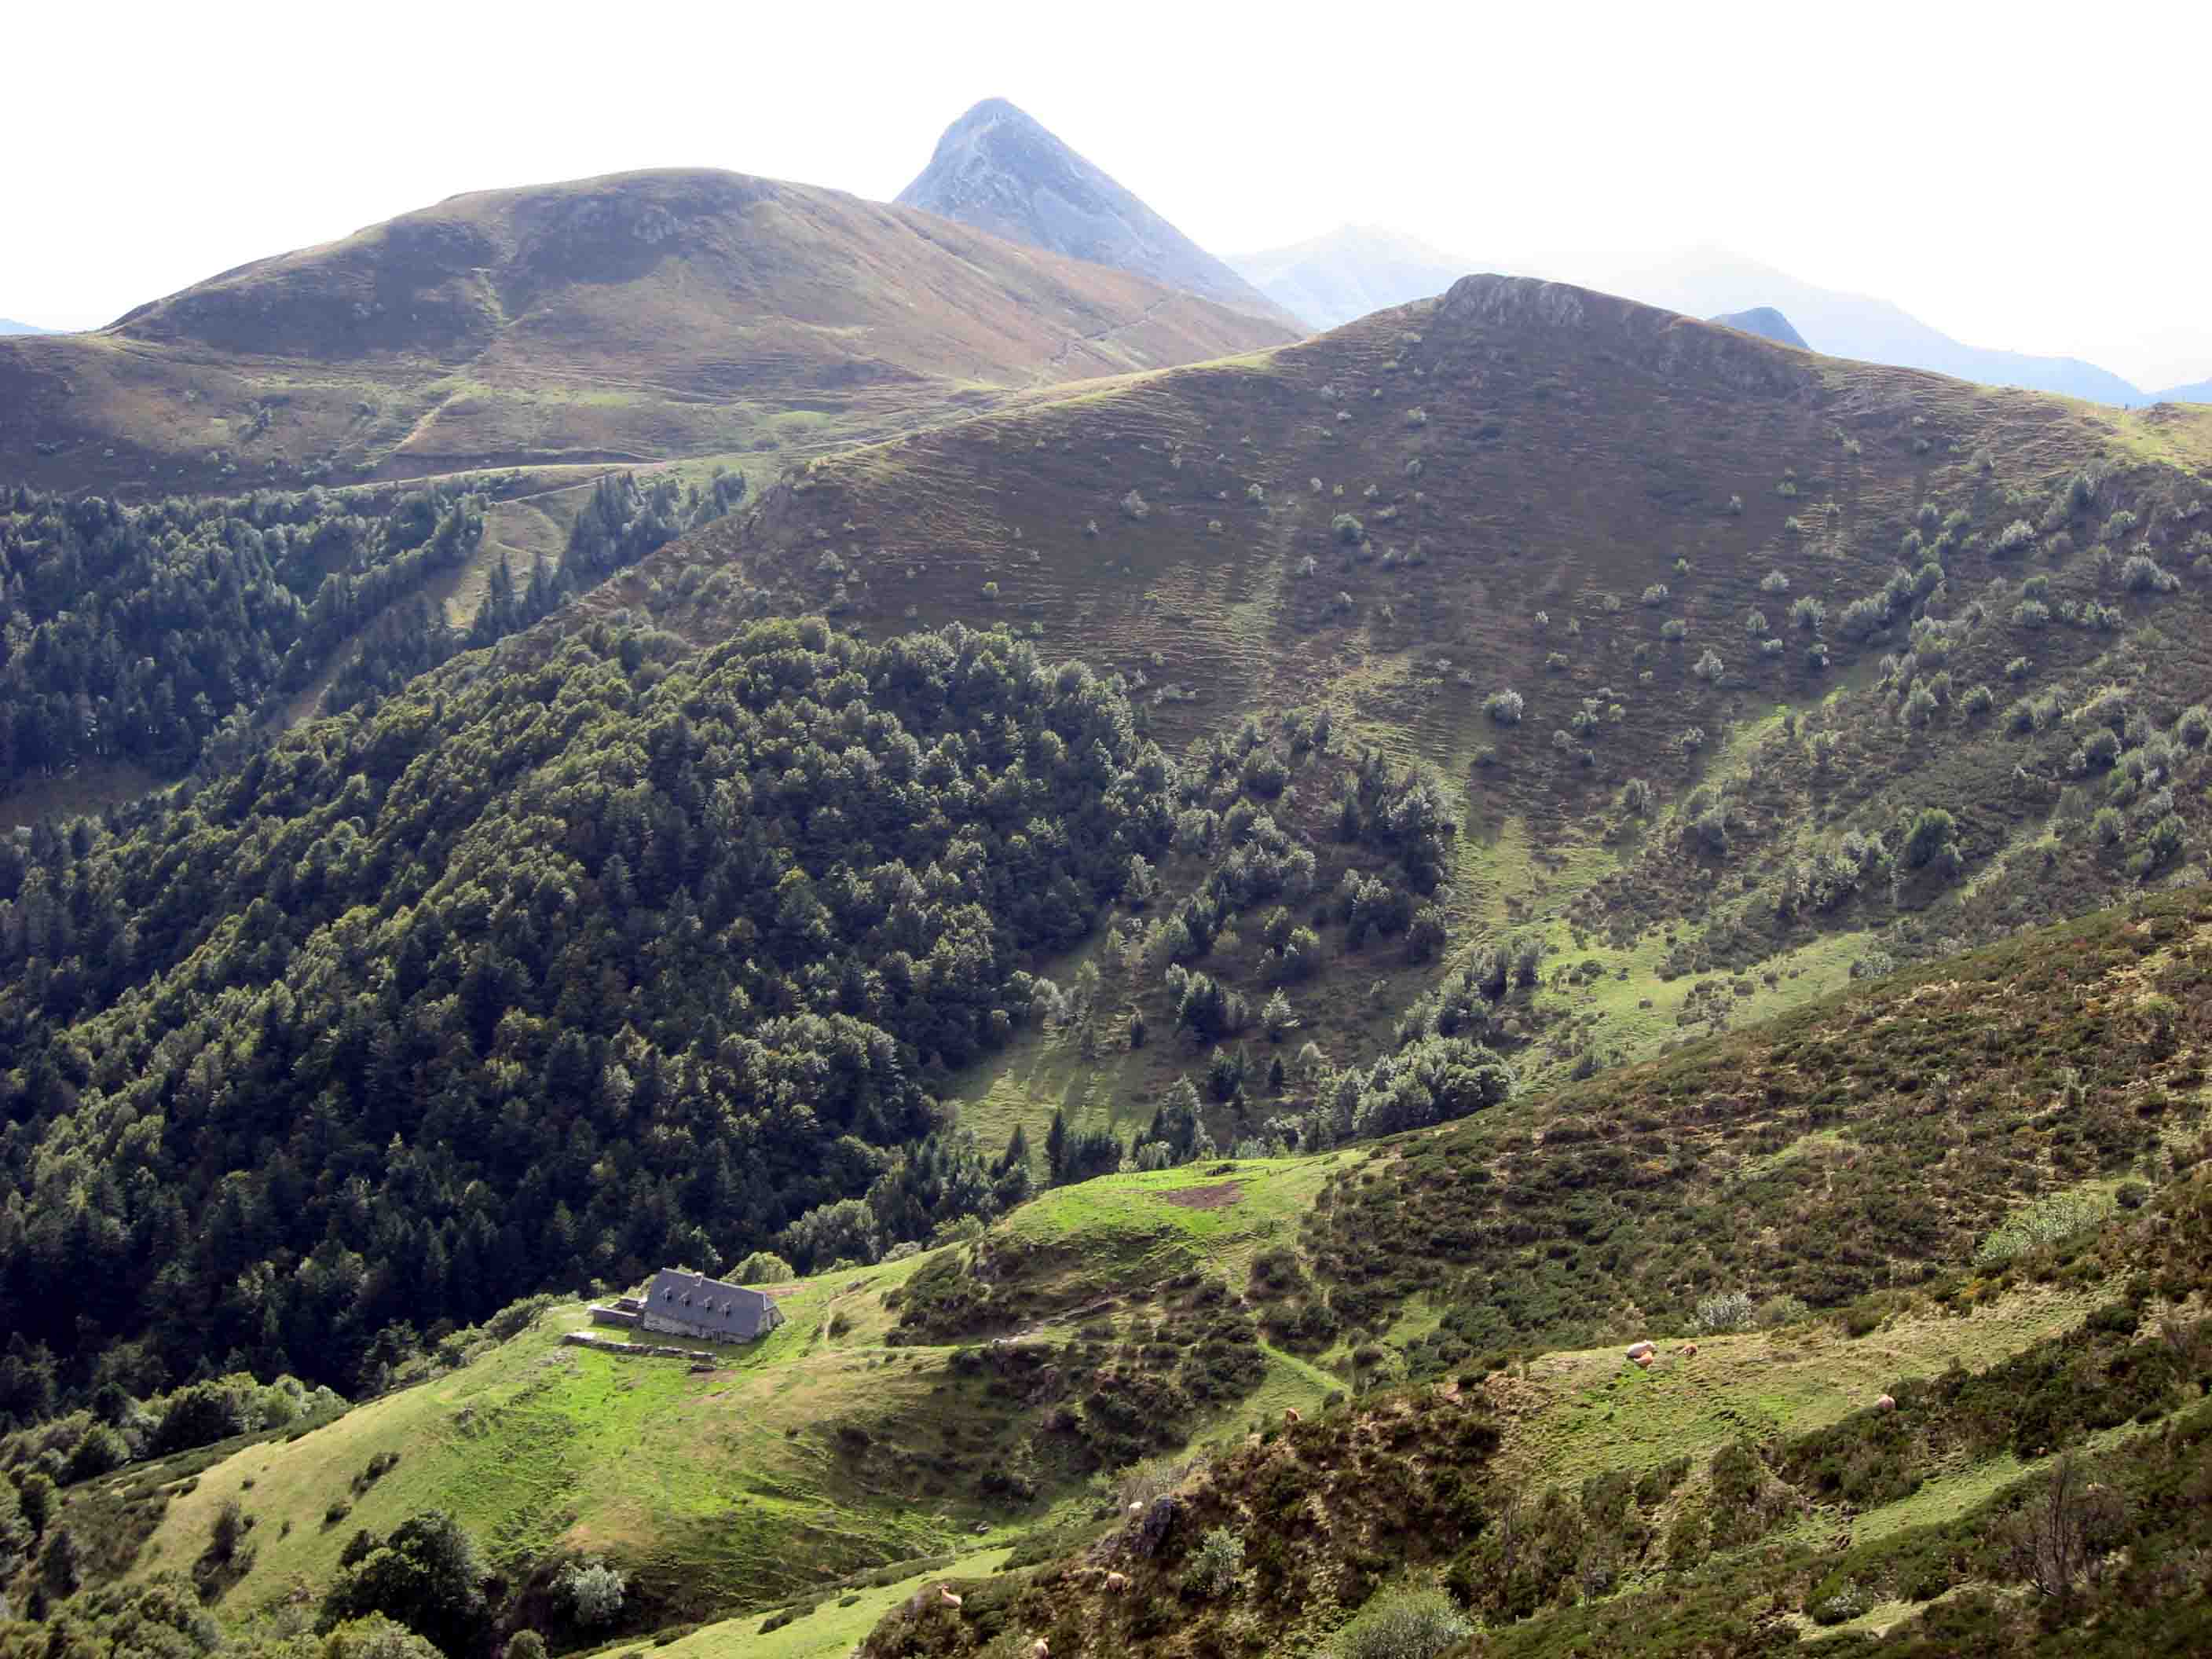 Monts de Cantal